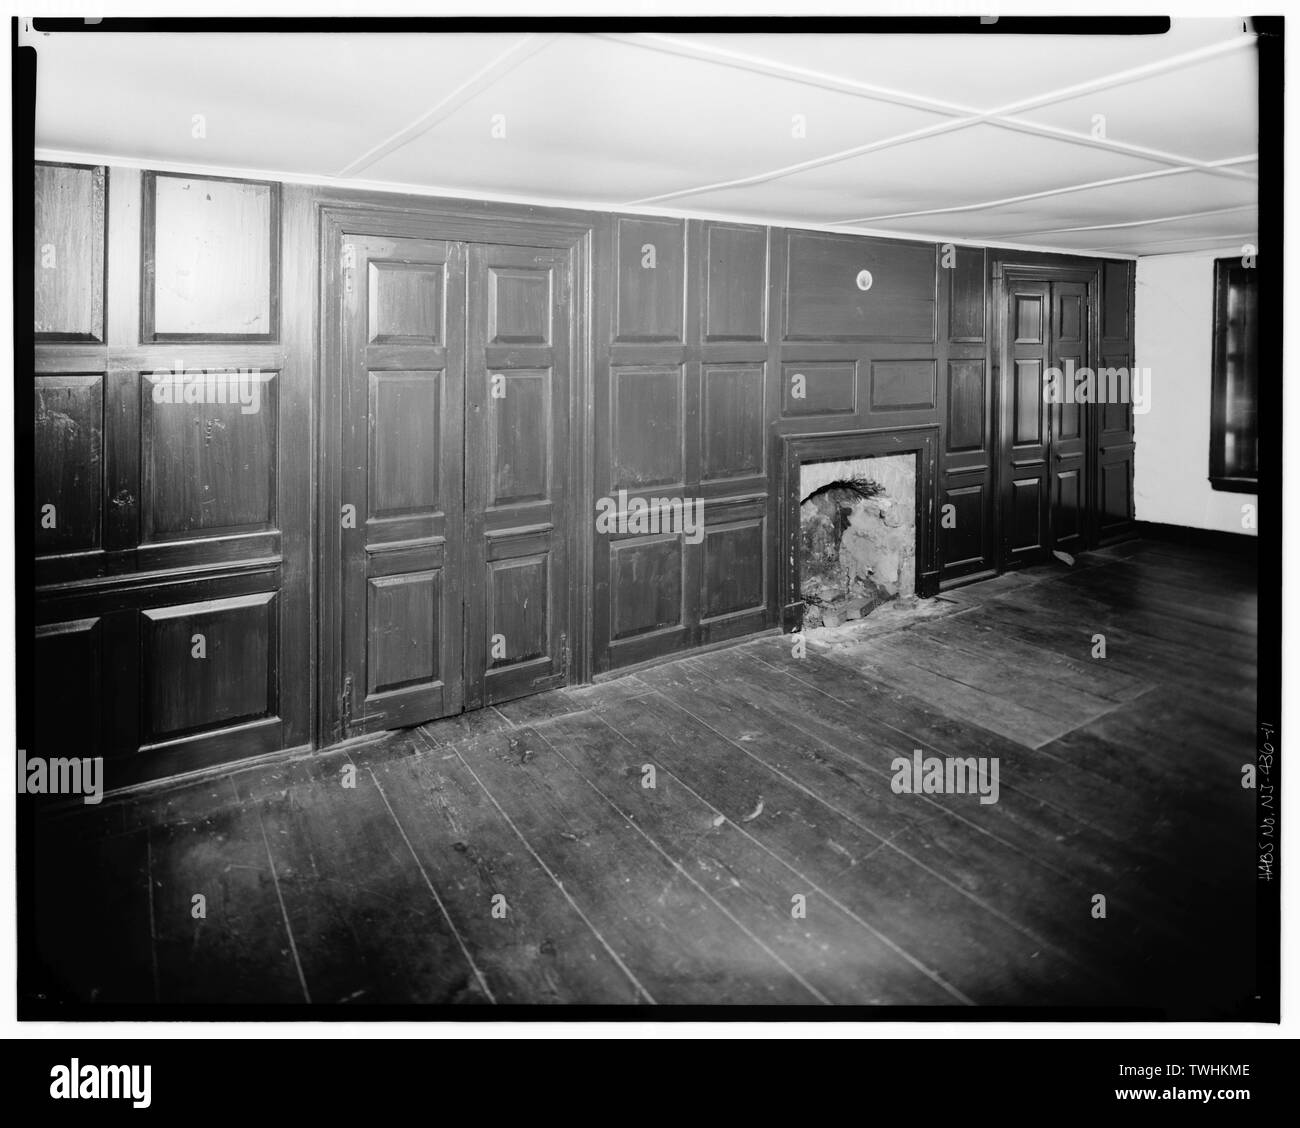 SECOND FLOOR, SOUTHWEST WALL OF SOUTHWEST ROOM - Isaac Van Campen House, Old Mine Road, Wallpack Center, Sussex County, NJ - Stock Image